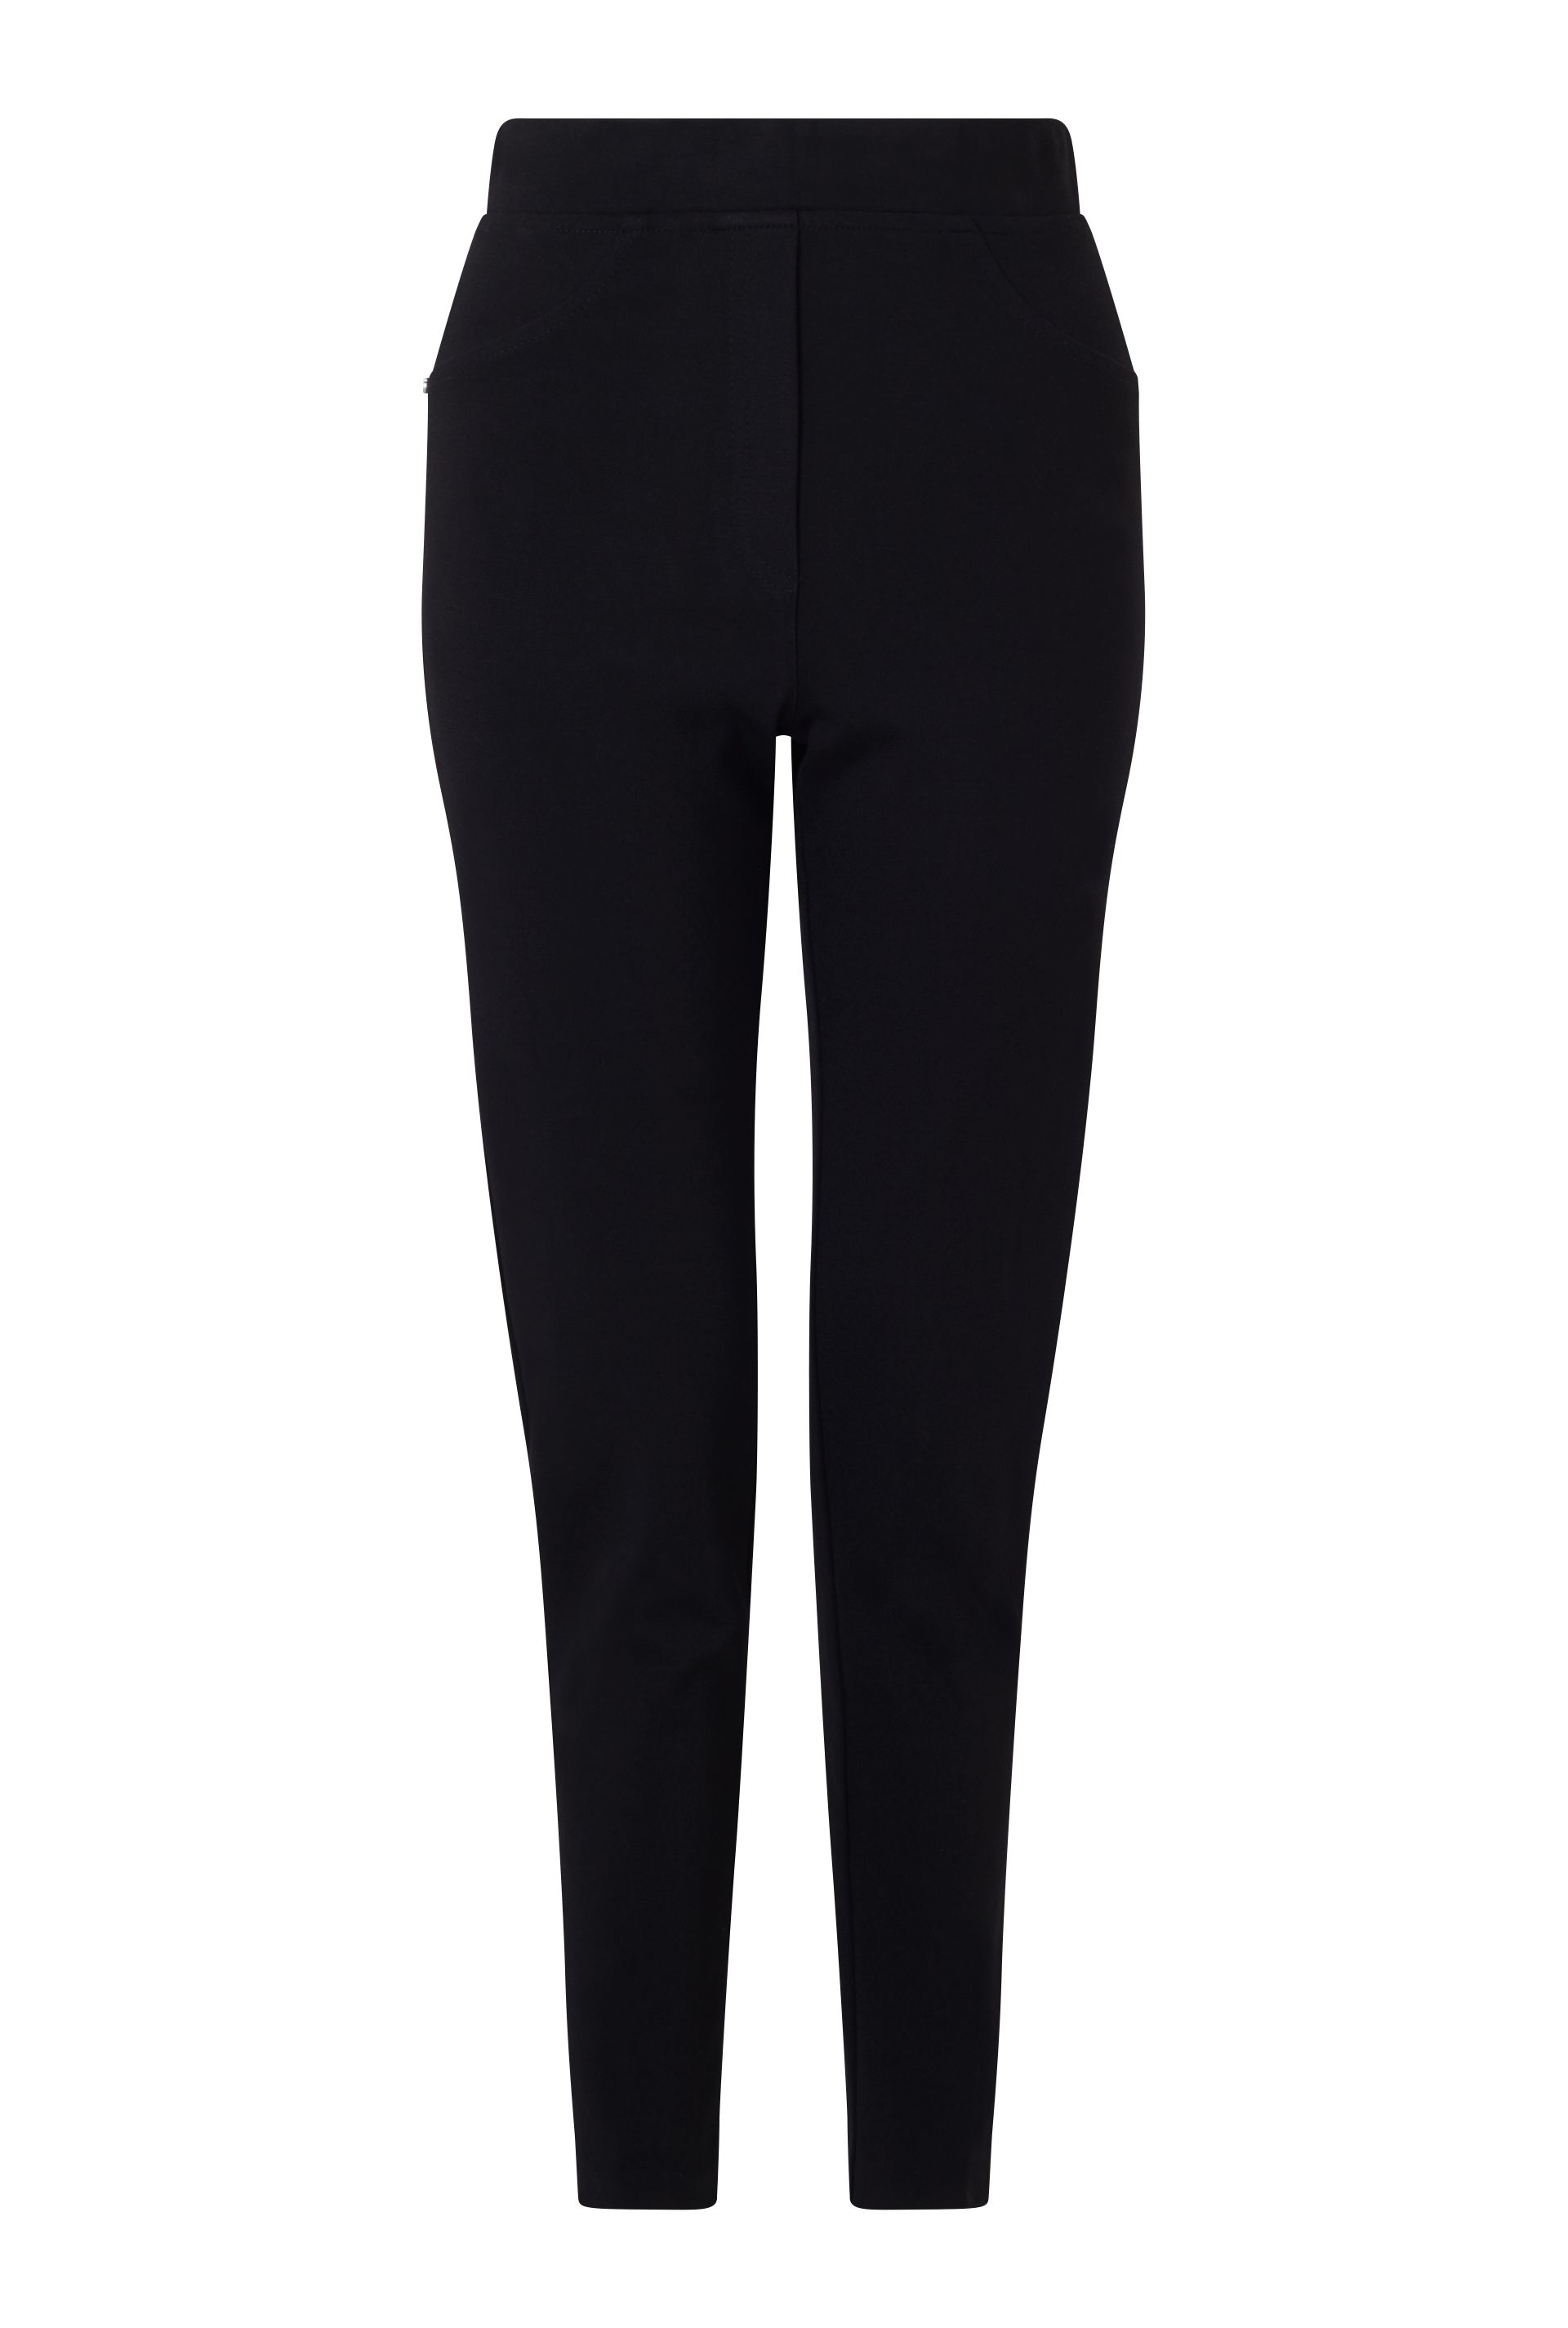 James Lakeland Slim Leg Pull On Trouser, Black